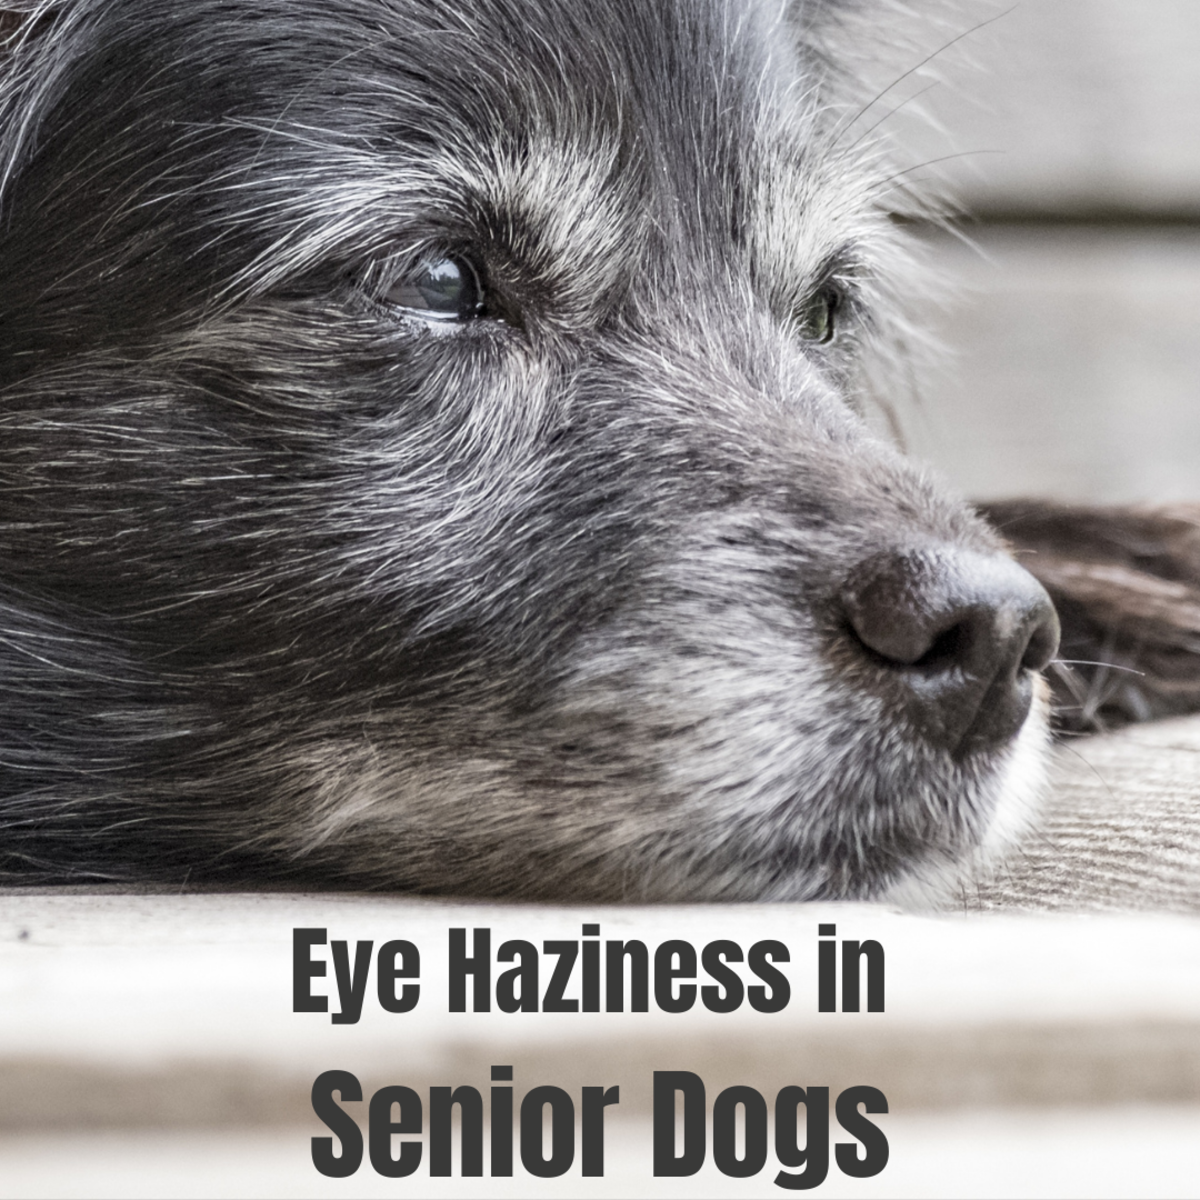 What causes eye haziness in older dogs?